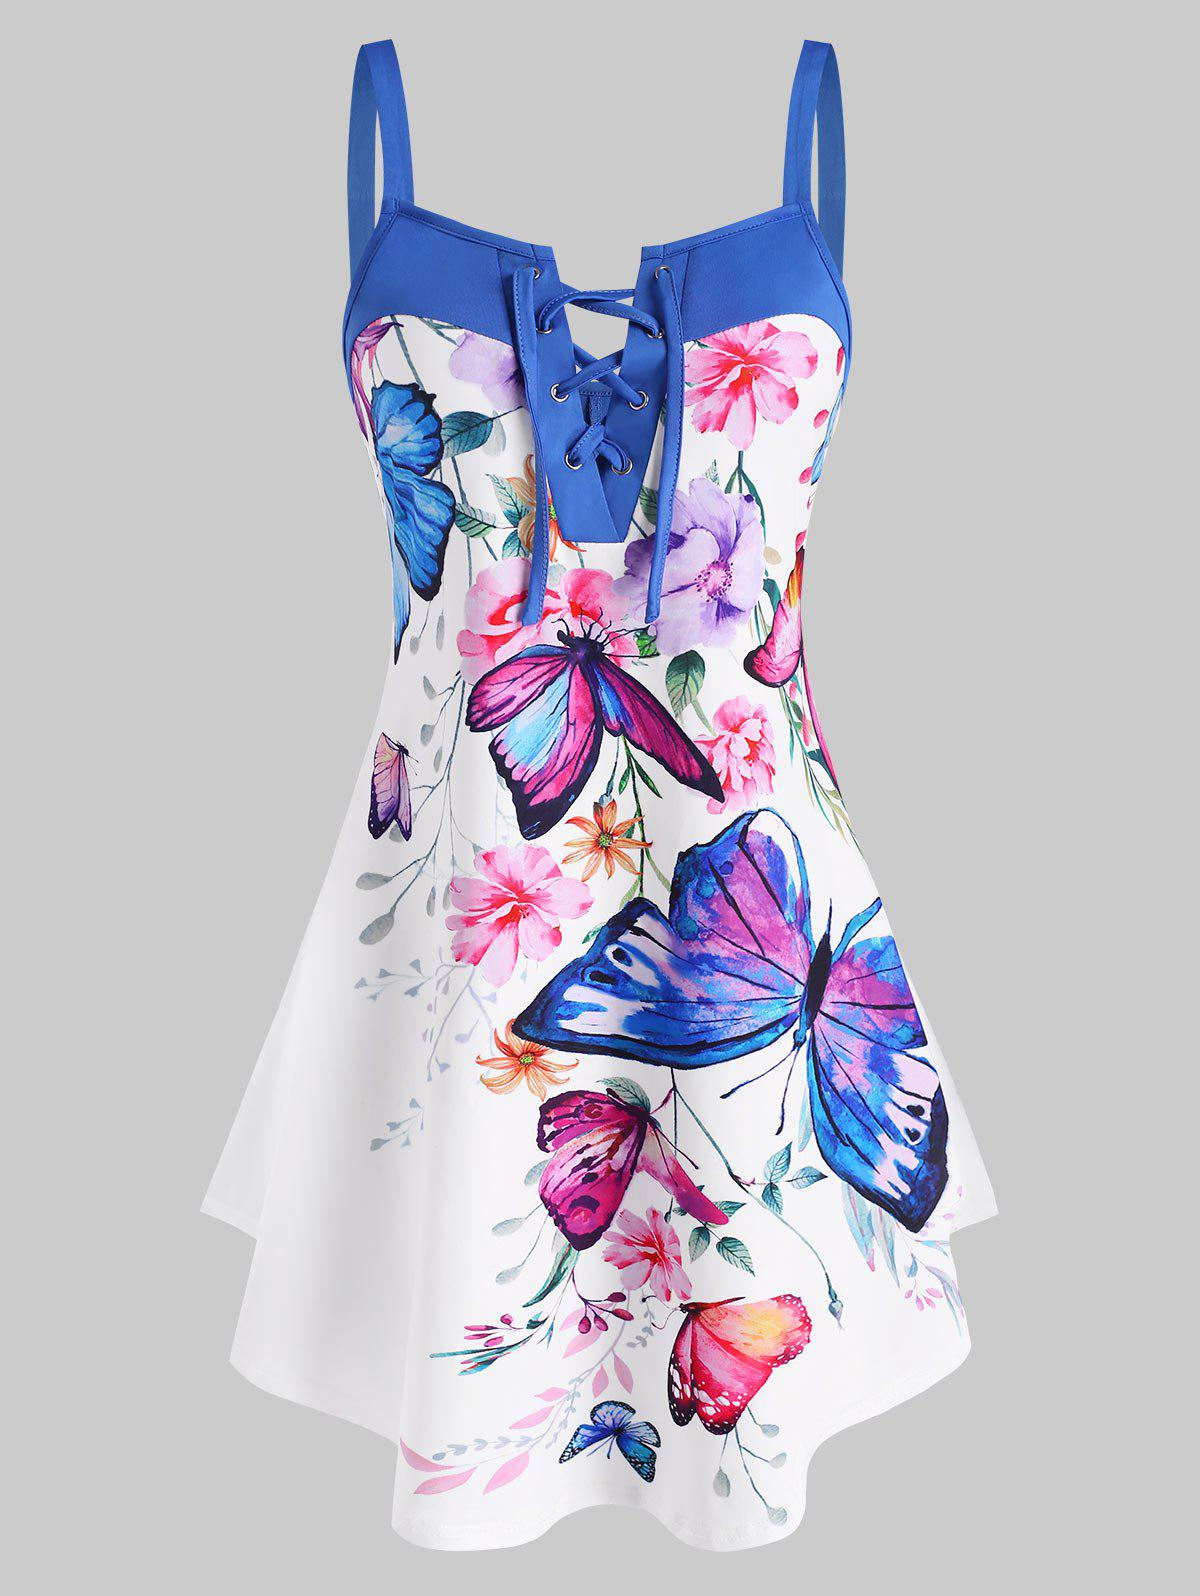 Flower Butterfly Print Lace Up Curved Hem Tank Top - multicolor XXL